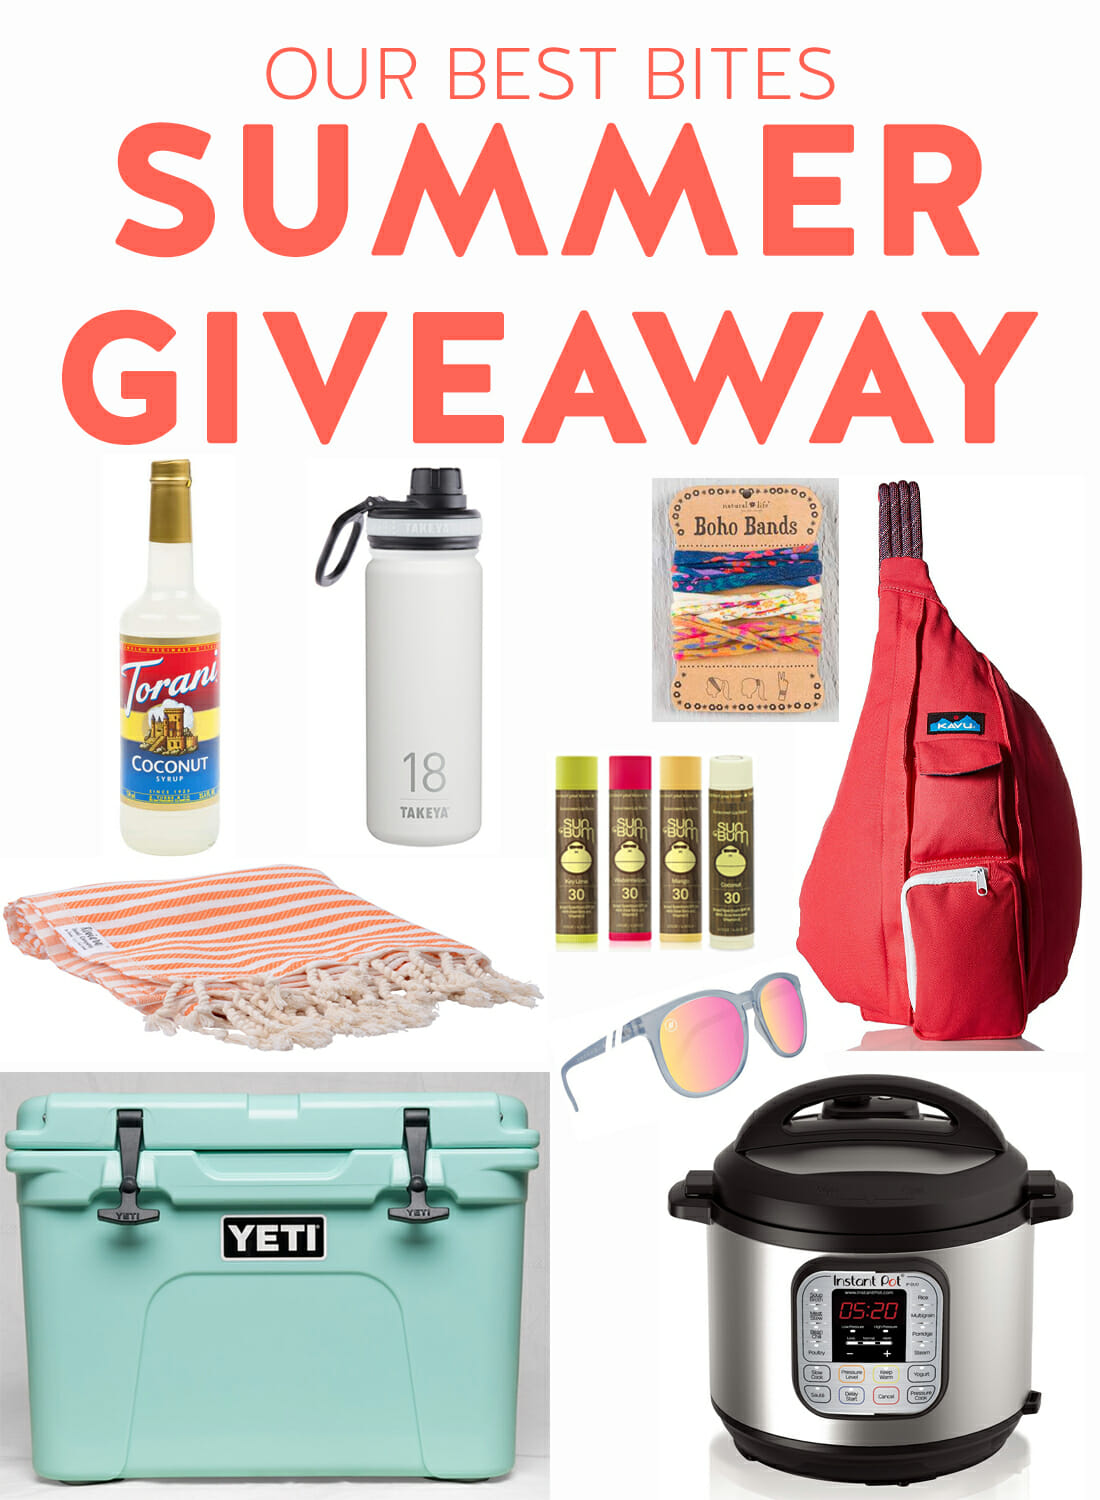 Our Best Bites Summer Giveaway